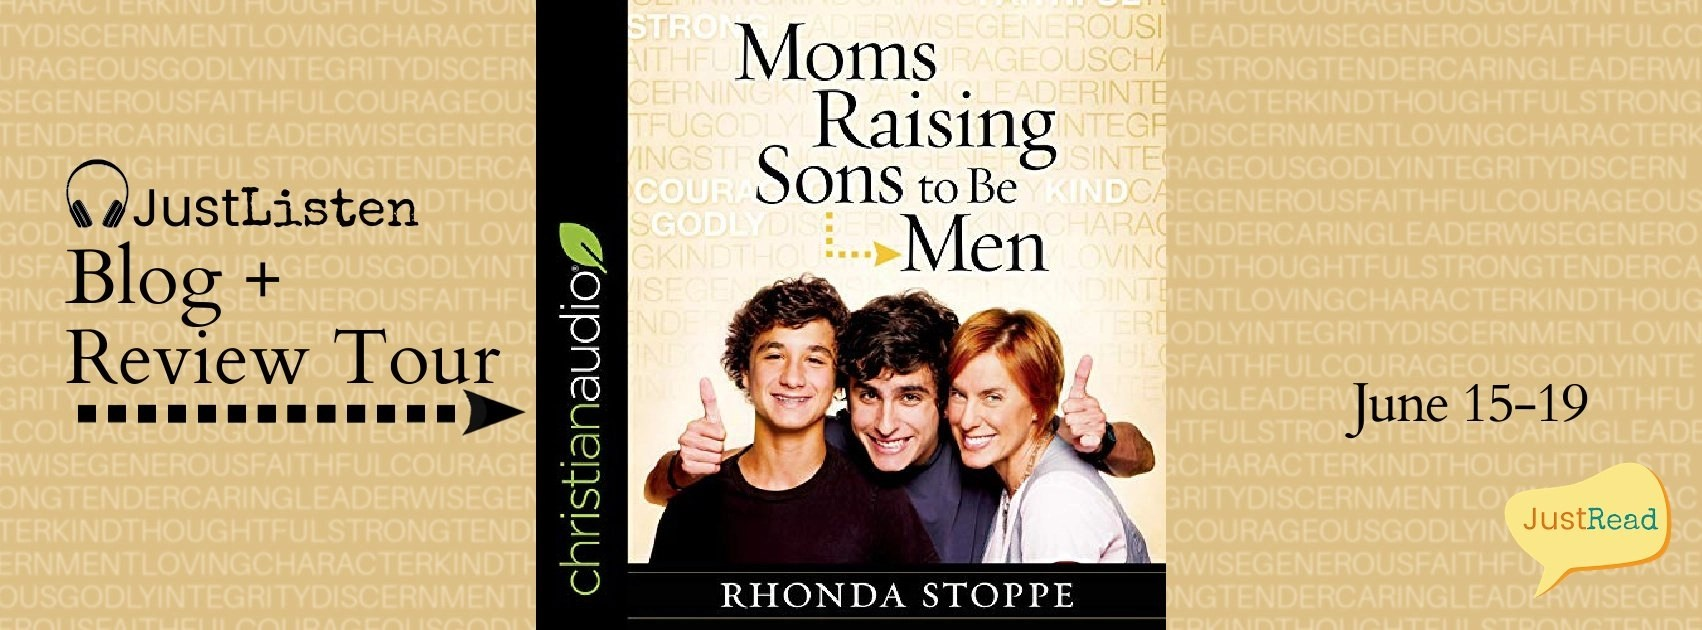 Welcome to the Moms Raising Sons to Be Men JustListen Blog + Review Tour & Giveaway!